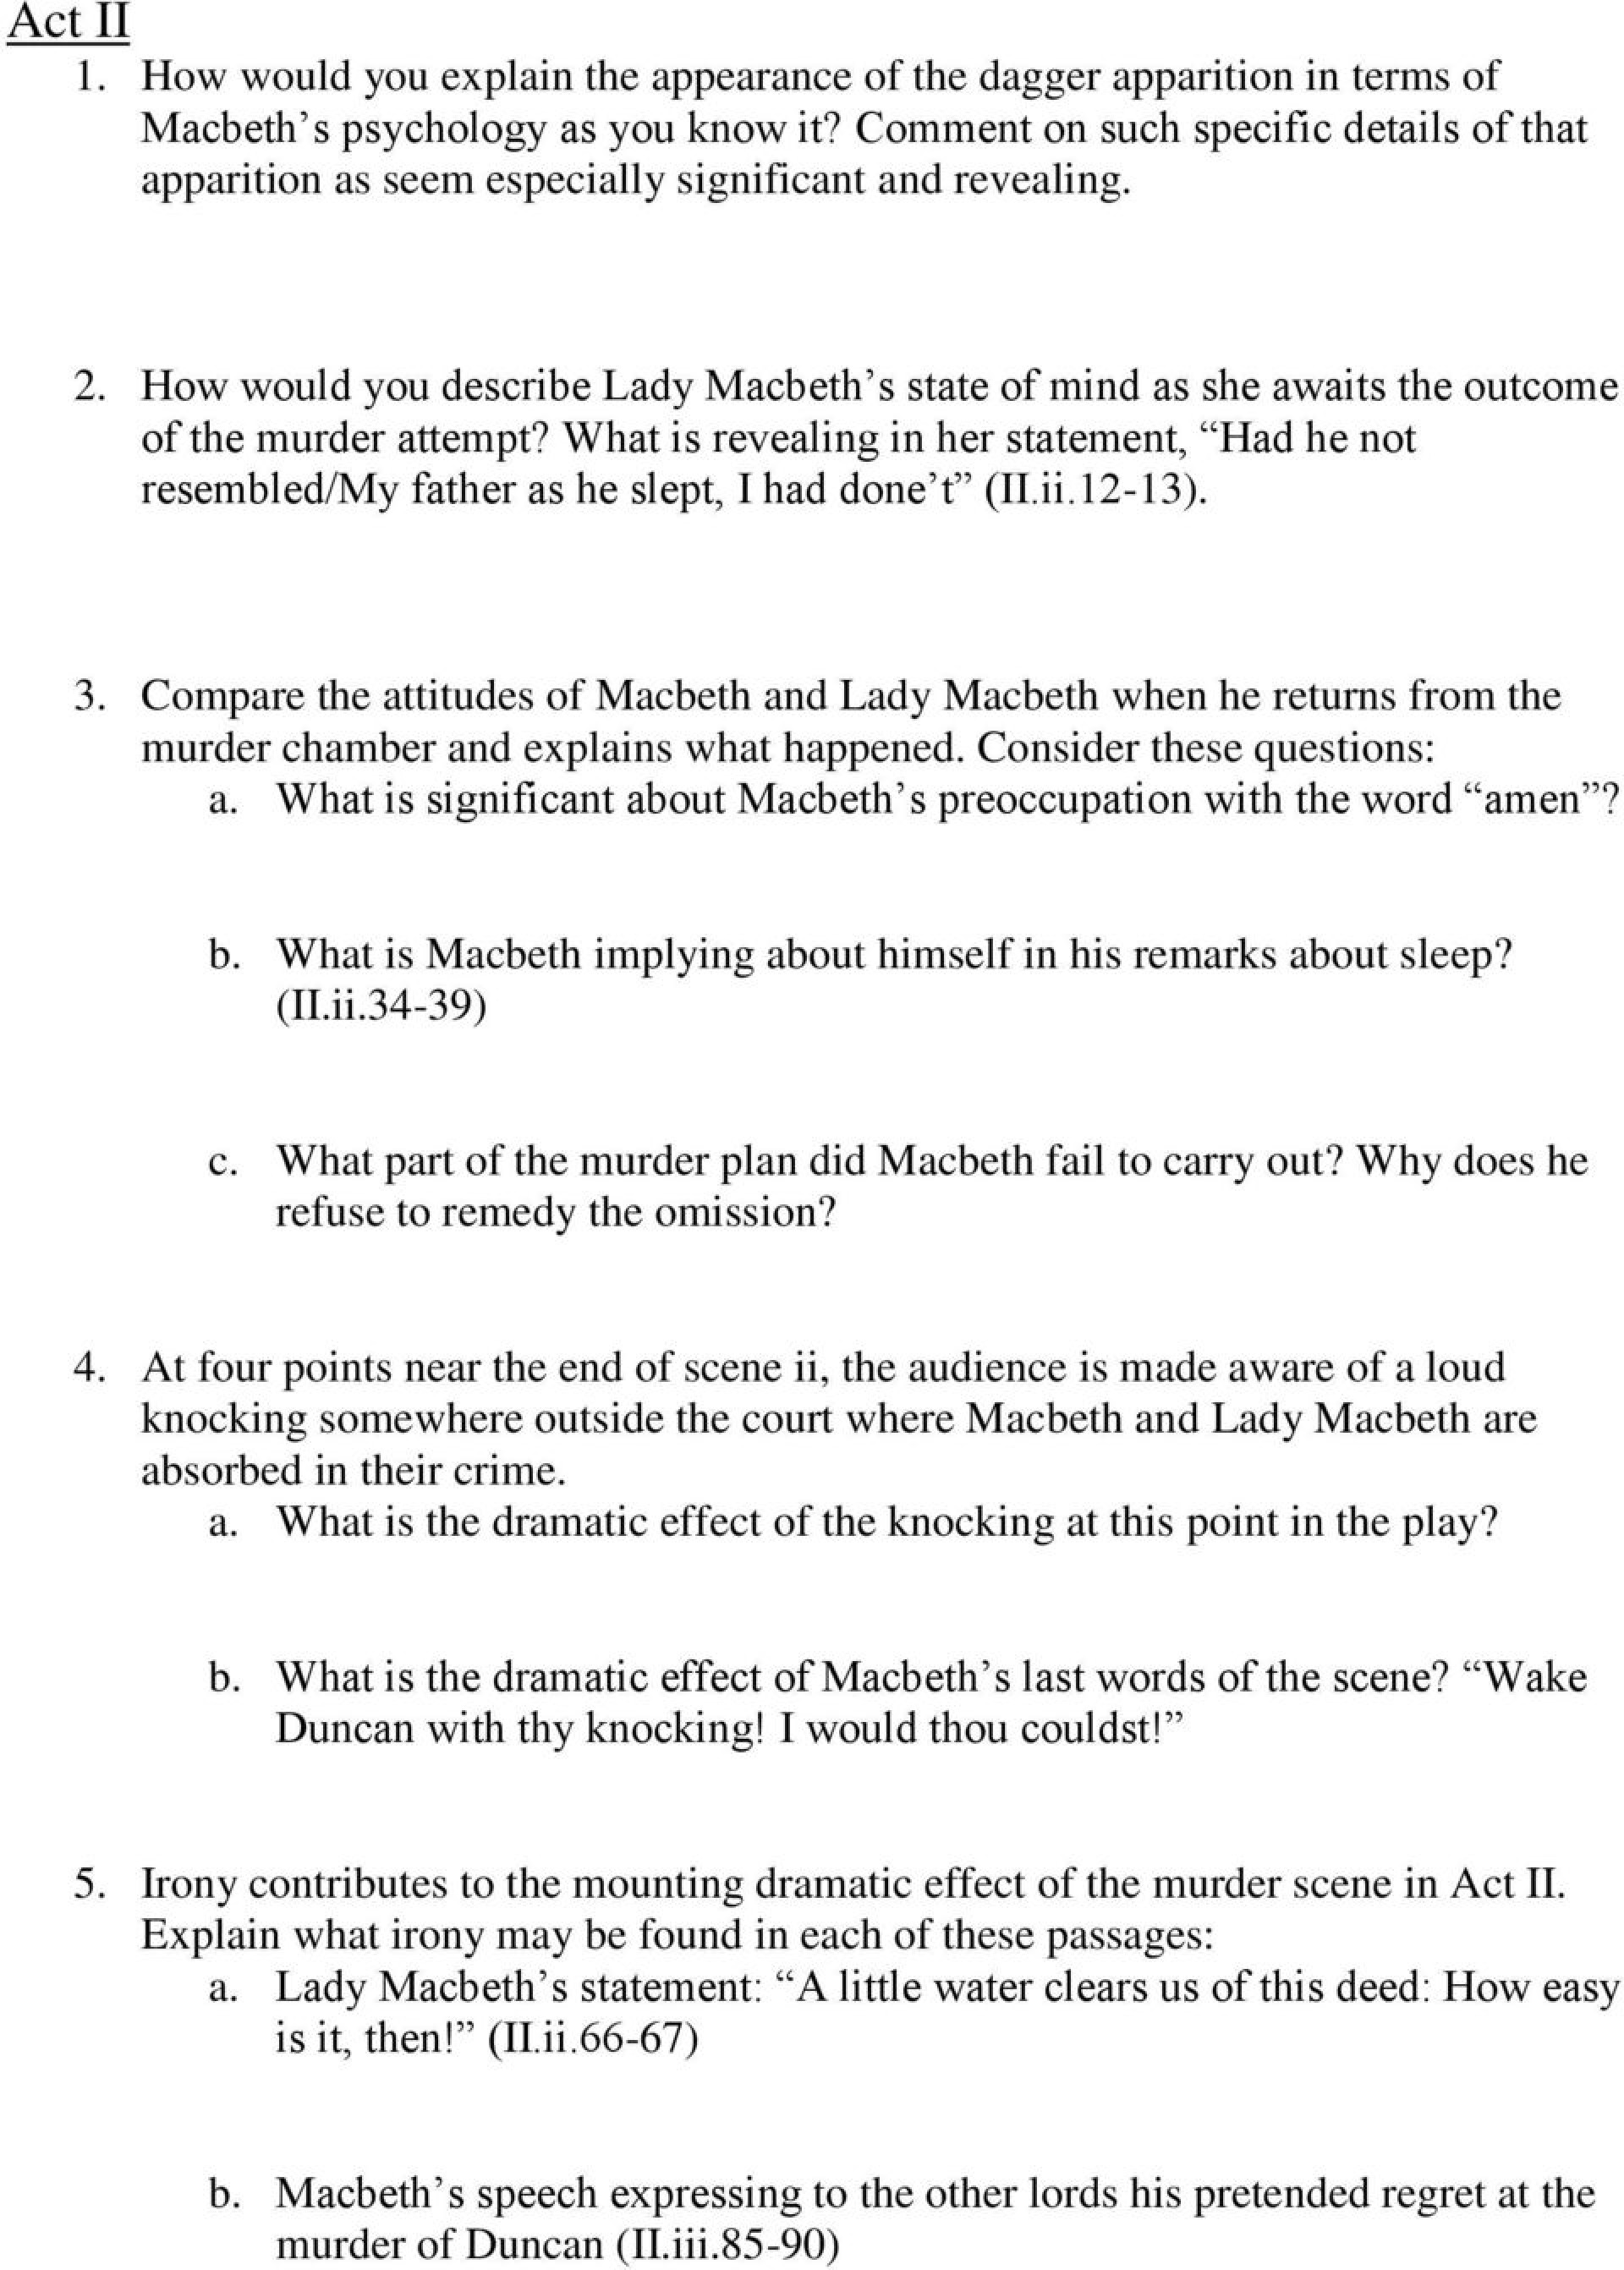 006 Macbeth Essay Questions Topics For How To Write Scholarships P Lord Of The Flies Examples Middle School Apply Texas College Applications Kill Mockingbird Common App Fahrenheit Example Surprising Pdf Grade 11 Tragic Hero 1920